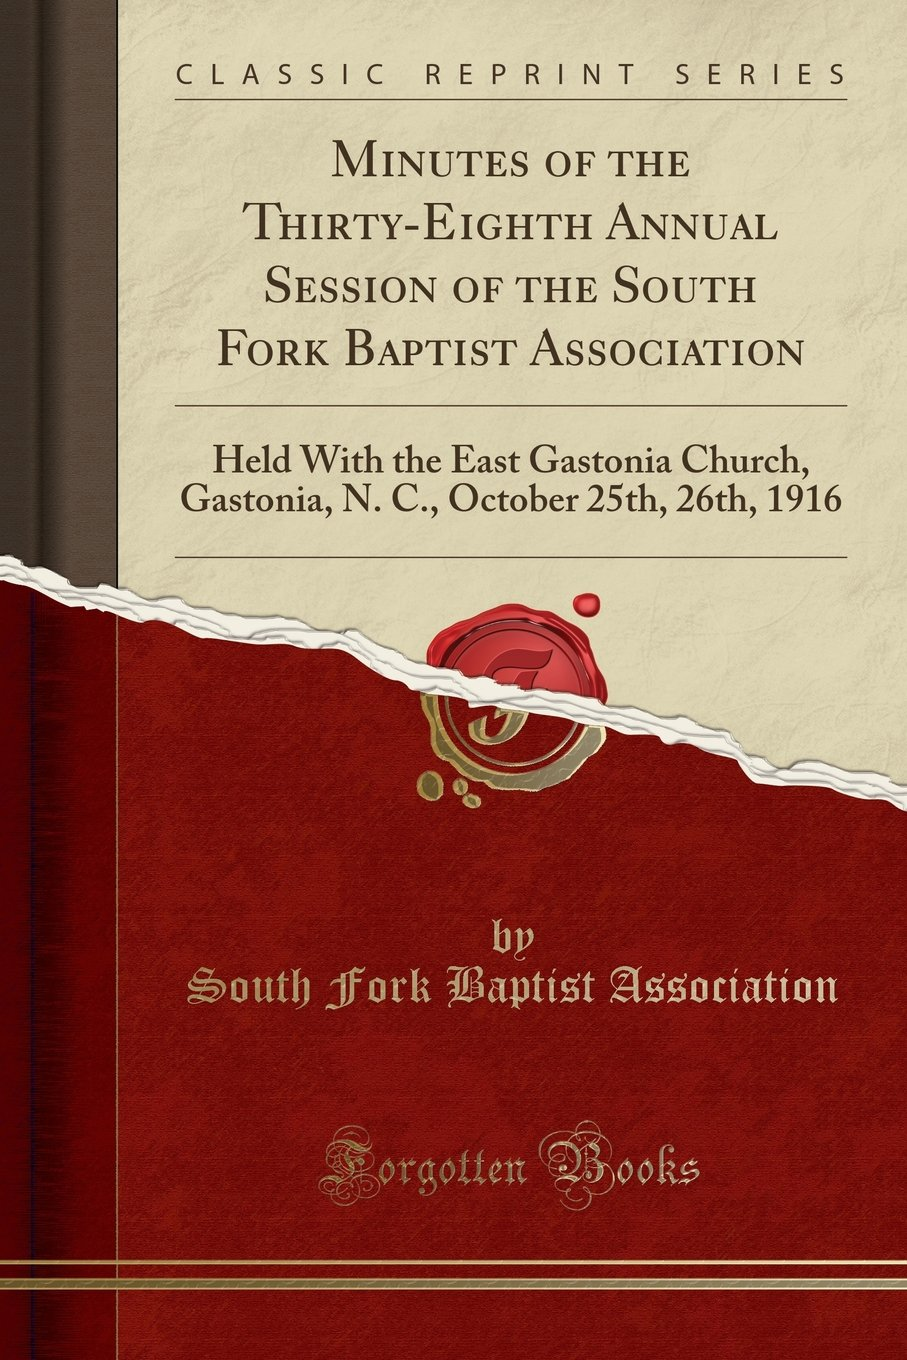 Read Online Minutes of the Thirty-Eighth Annual Session of the South Fork Baptist Association: Held With the East Gastonia Church, Gastonia, N. C., October 25th, 26th, 1916 (Classic Reprint) ebook